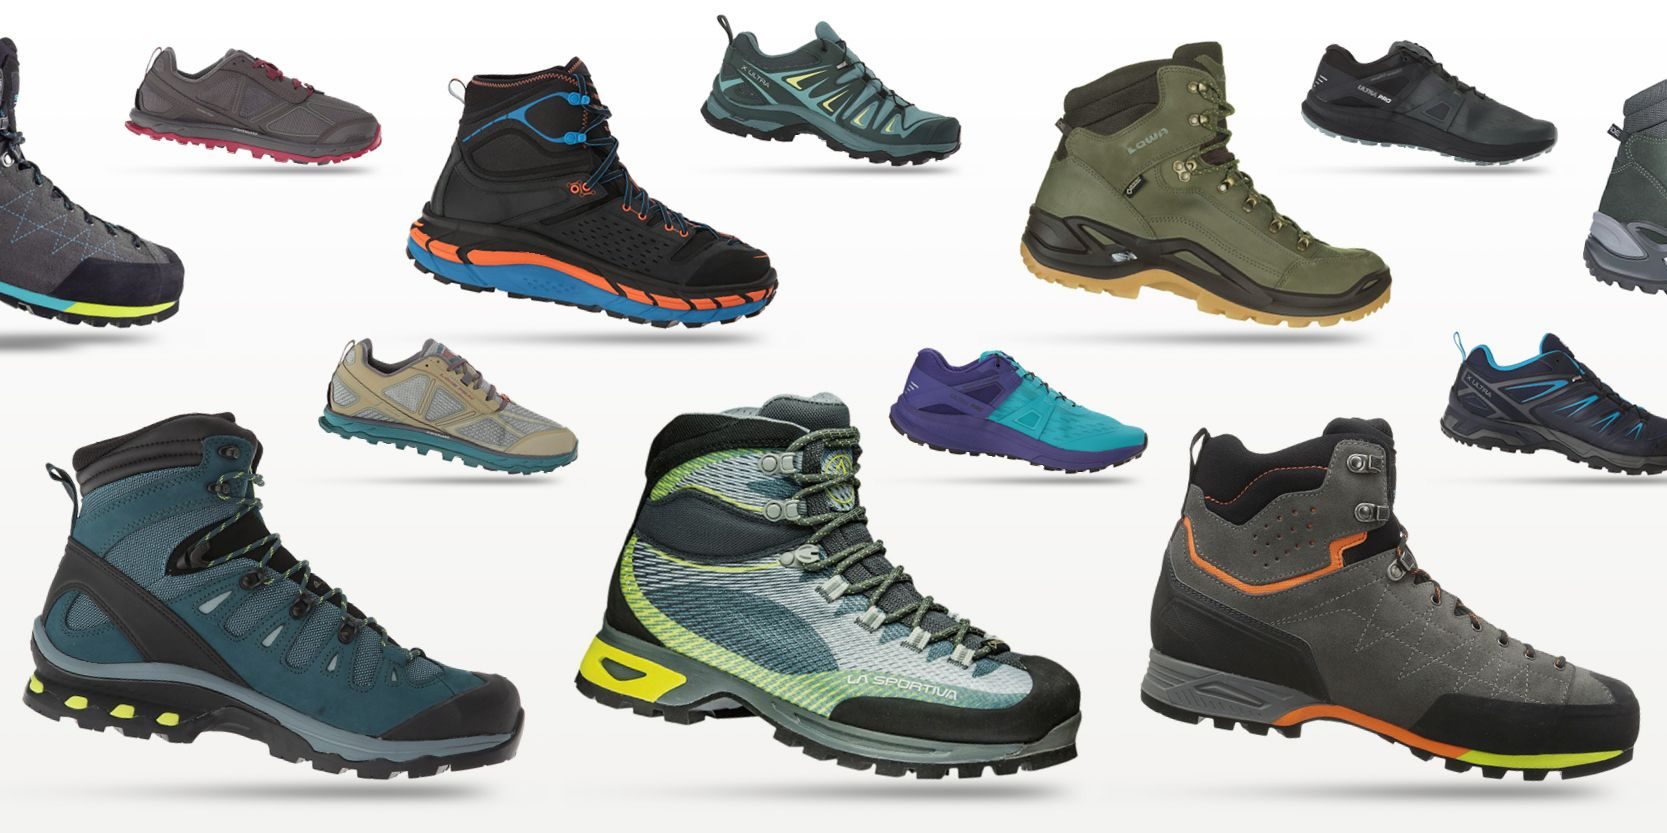 The Best Hiking Boots and Trail Running Shoes